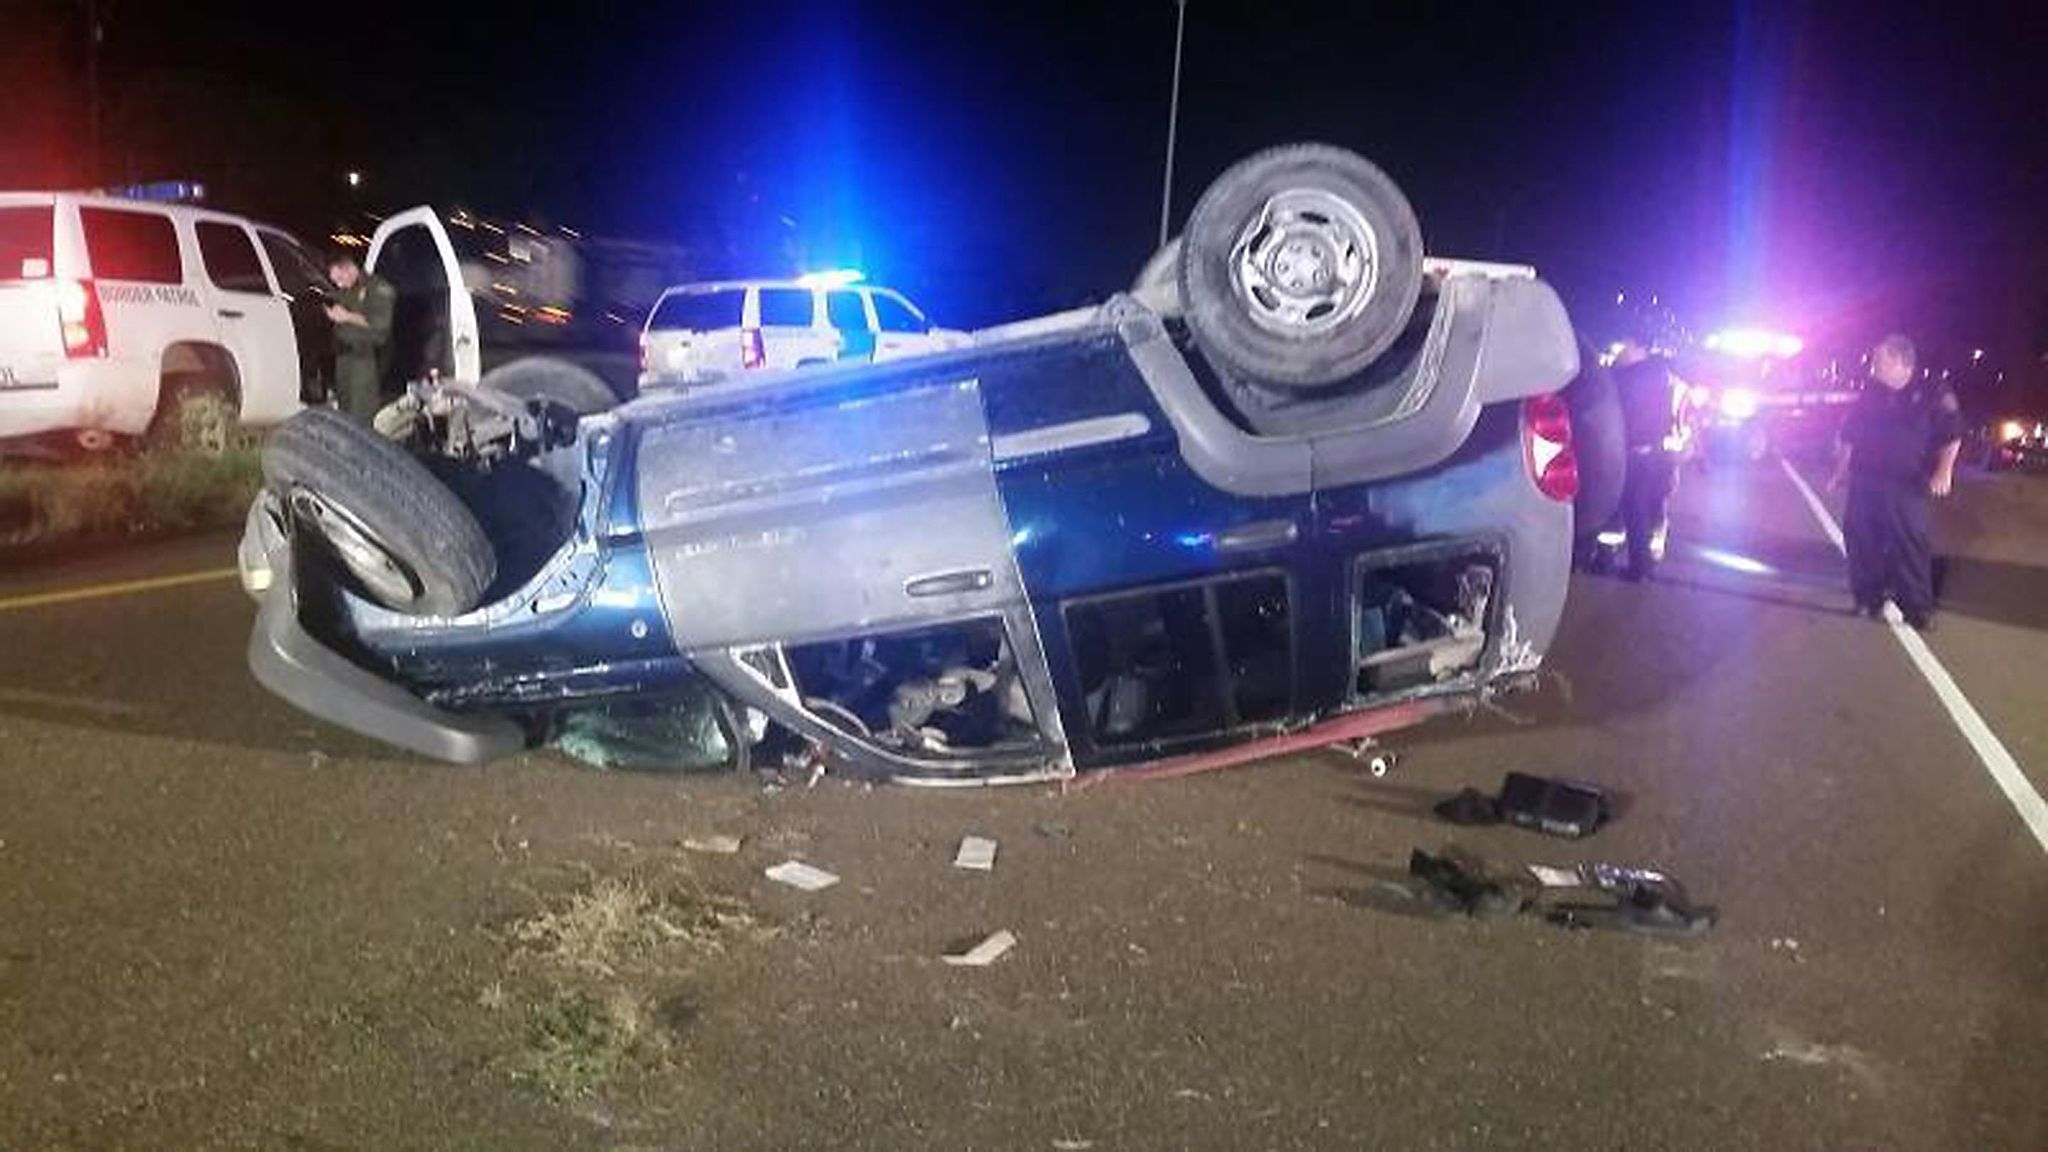 Rio_Grande_Valley_Border_Patrol_agents_provide_first_aid_to_accident_victim-2